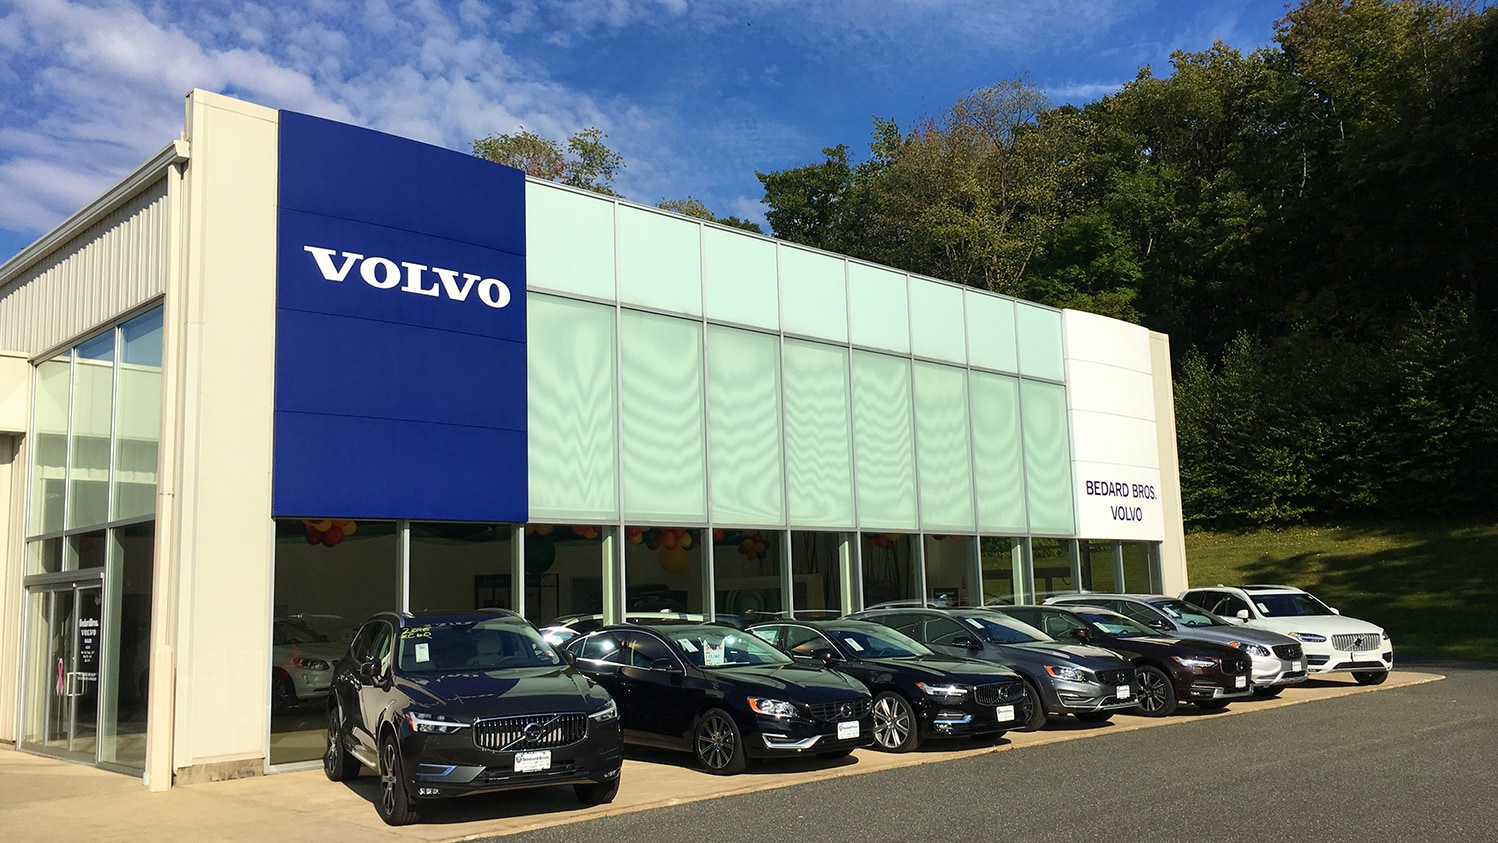 specials in new dealers duxbury dealer volvo and lease ma near finance offers htm rockland